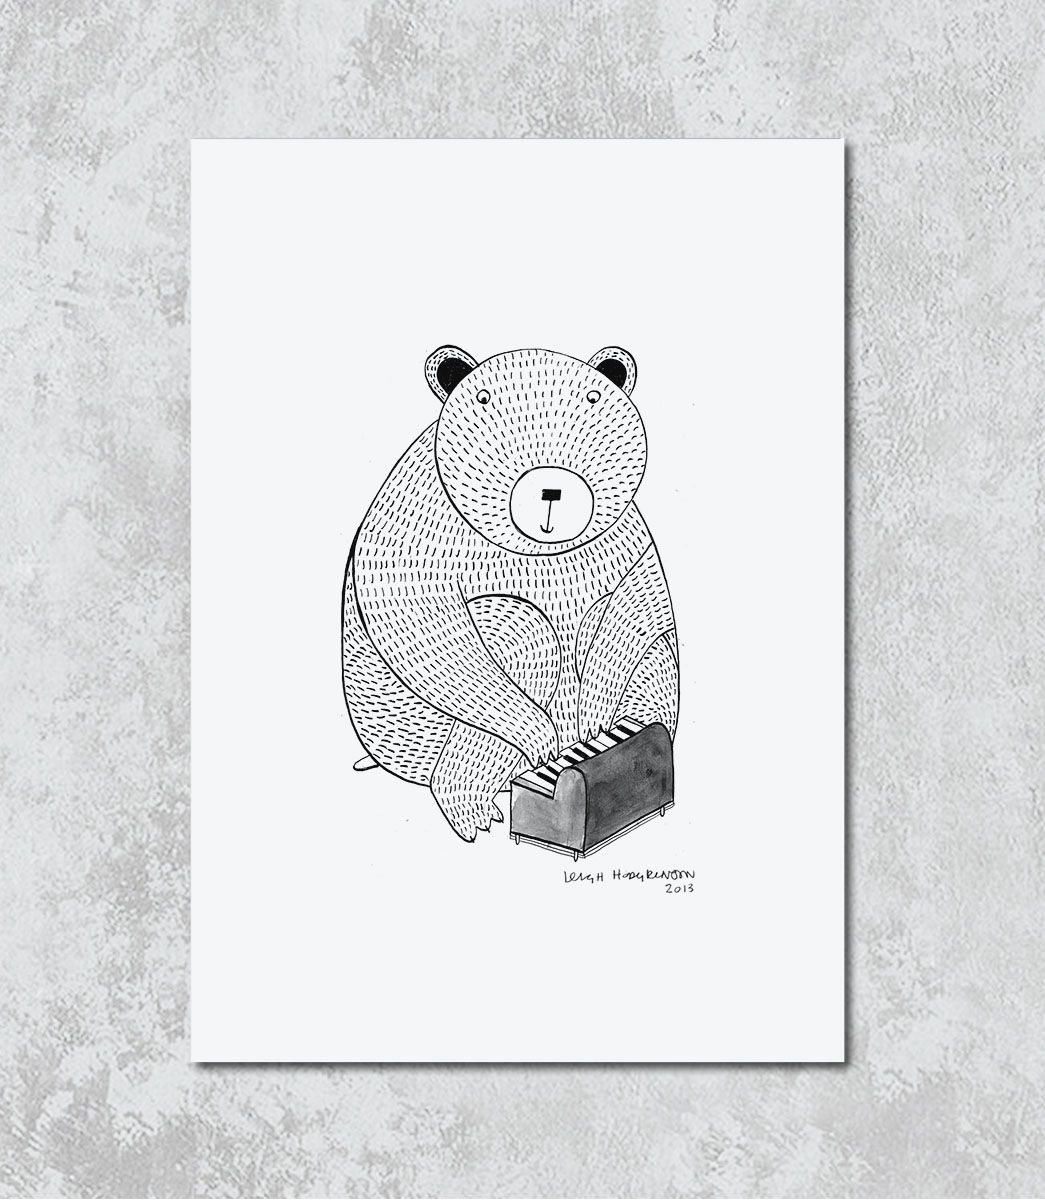 Decorativo - The Musician Bear